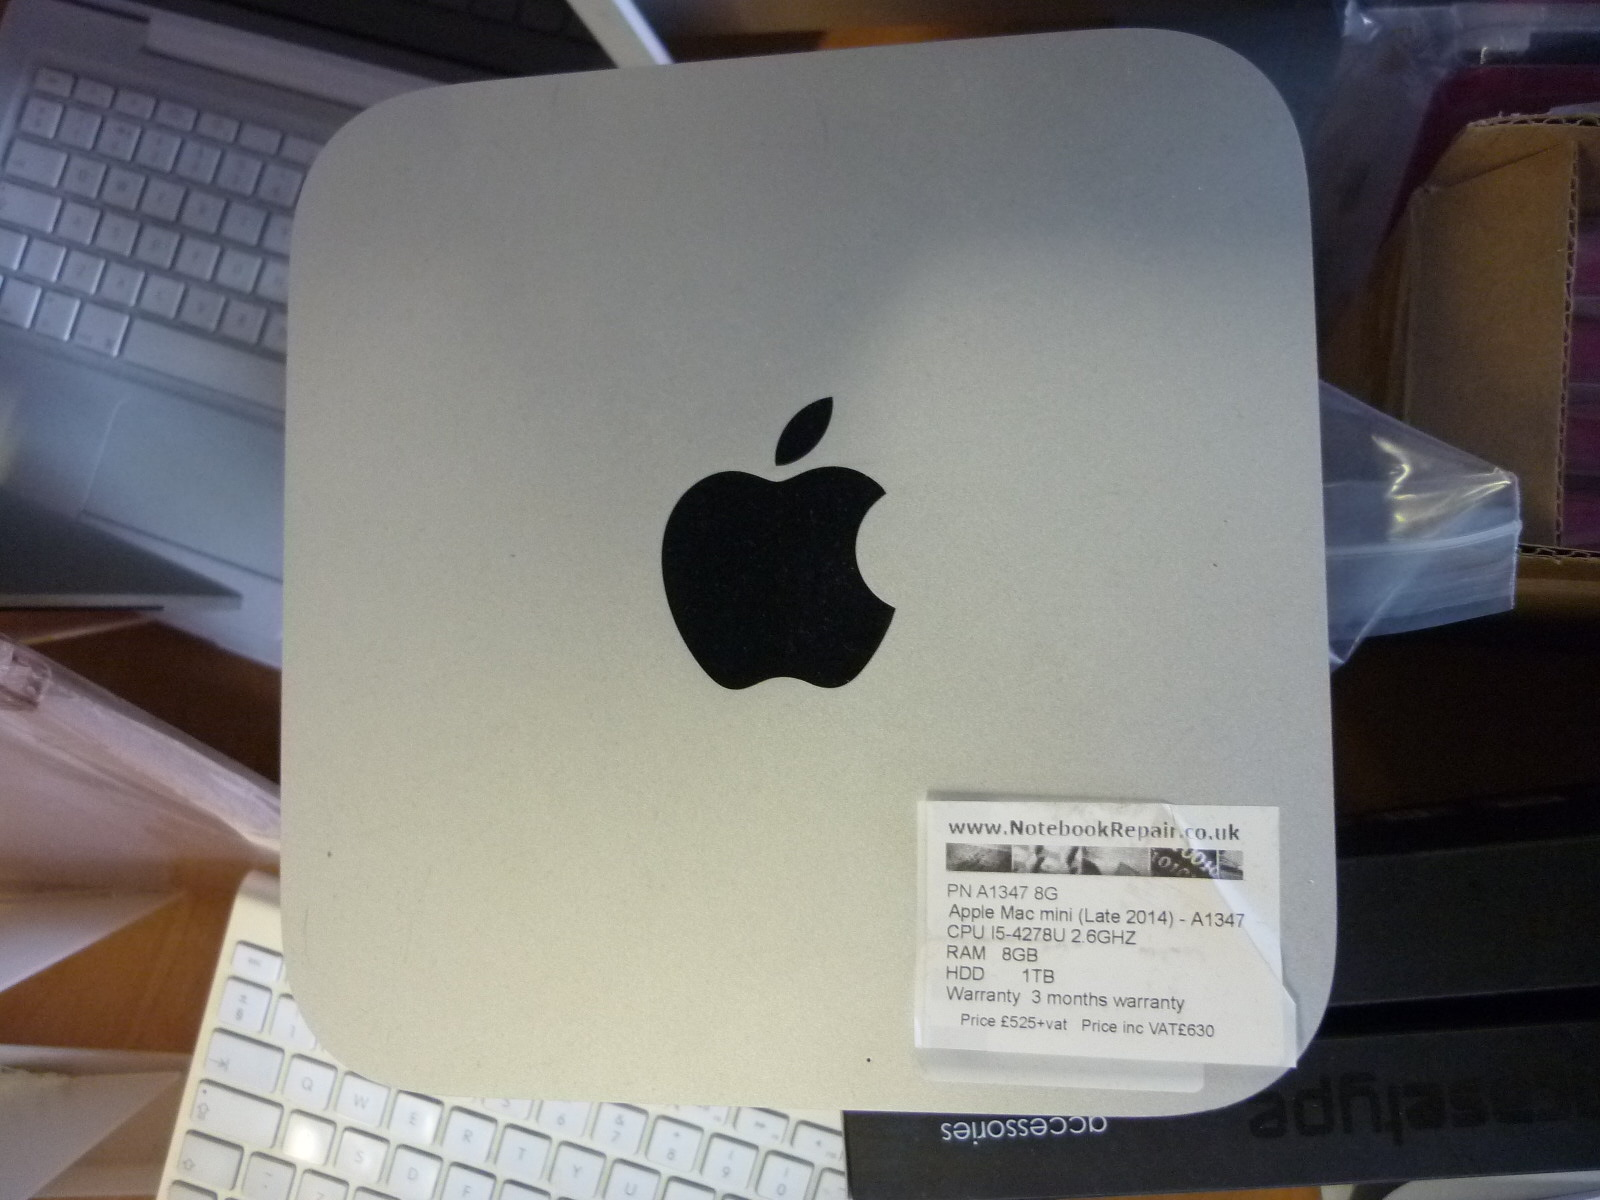 Apple Mac Mini (Late 2014) CPU i5-427BU 2.6GHz 8GB RAM 1TB HDD